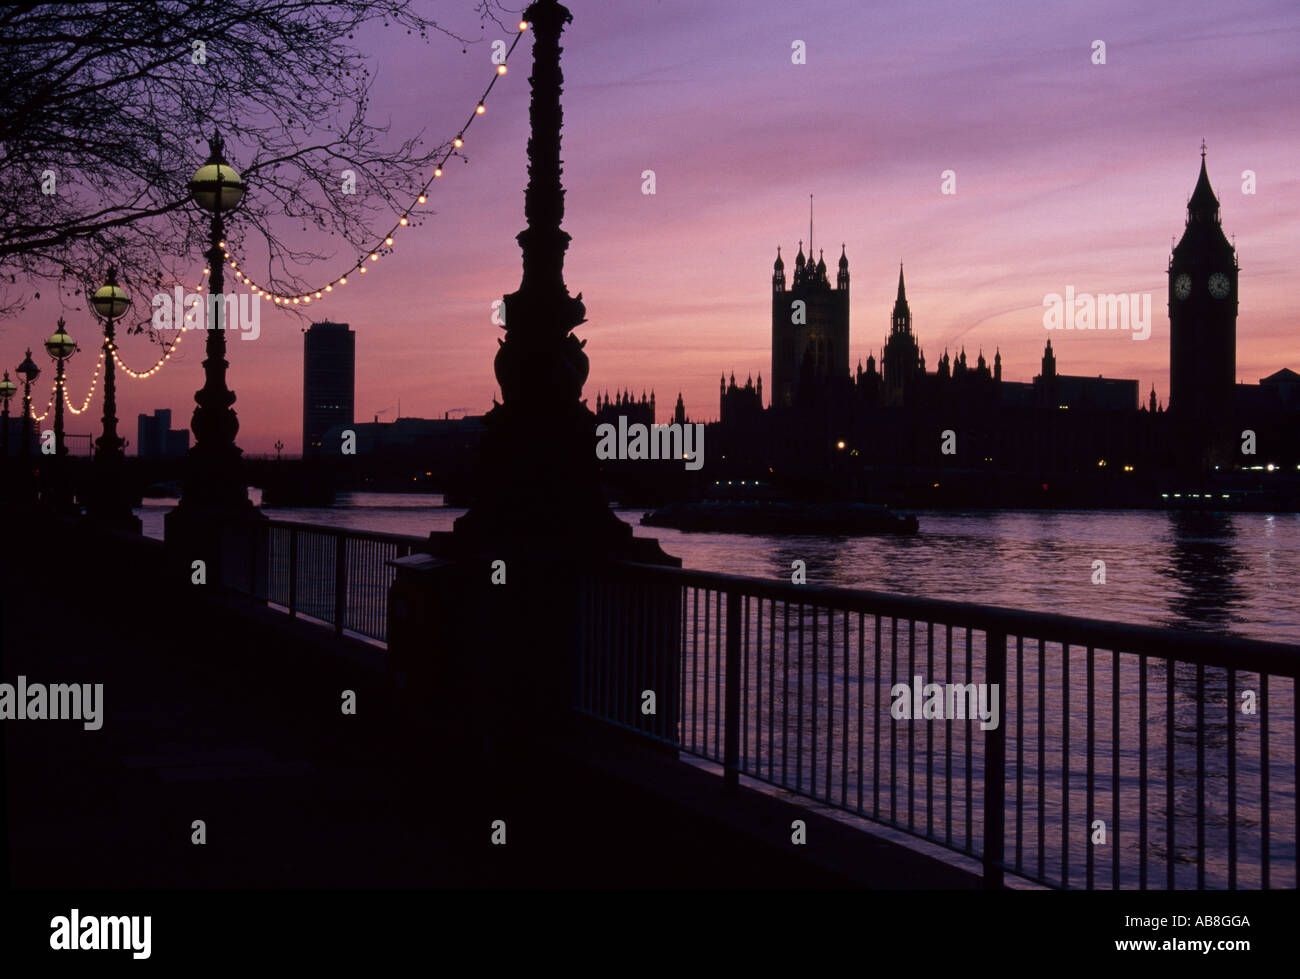 Houses of Parliament at Sunset, Westminster, London. South Bank of the River Thames. Architect: Charles Barry, A. W. N. Pugin - Stock Image